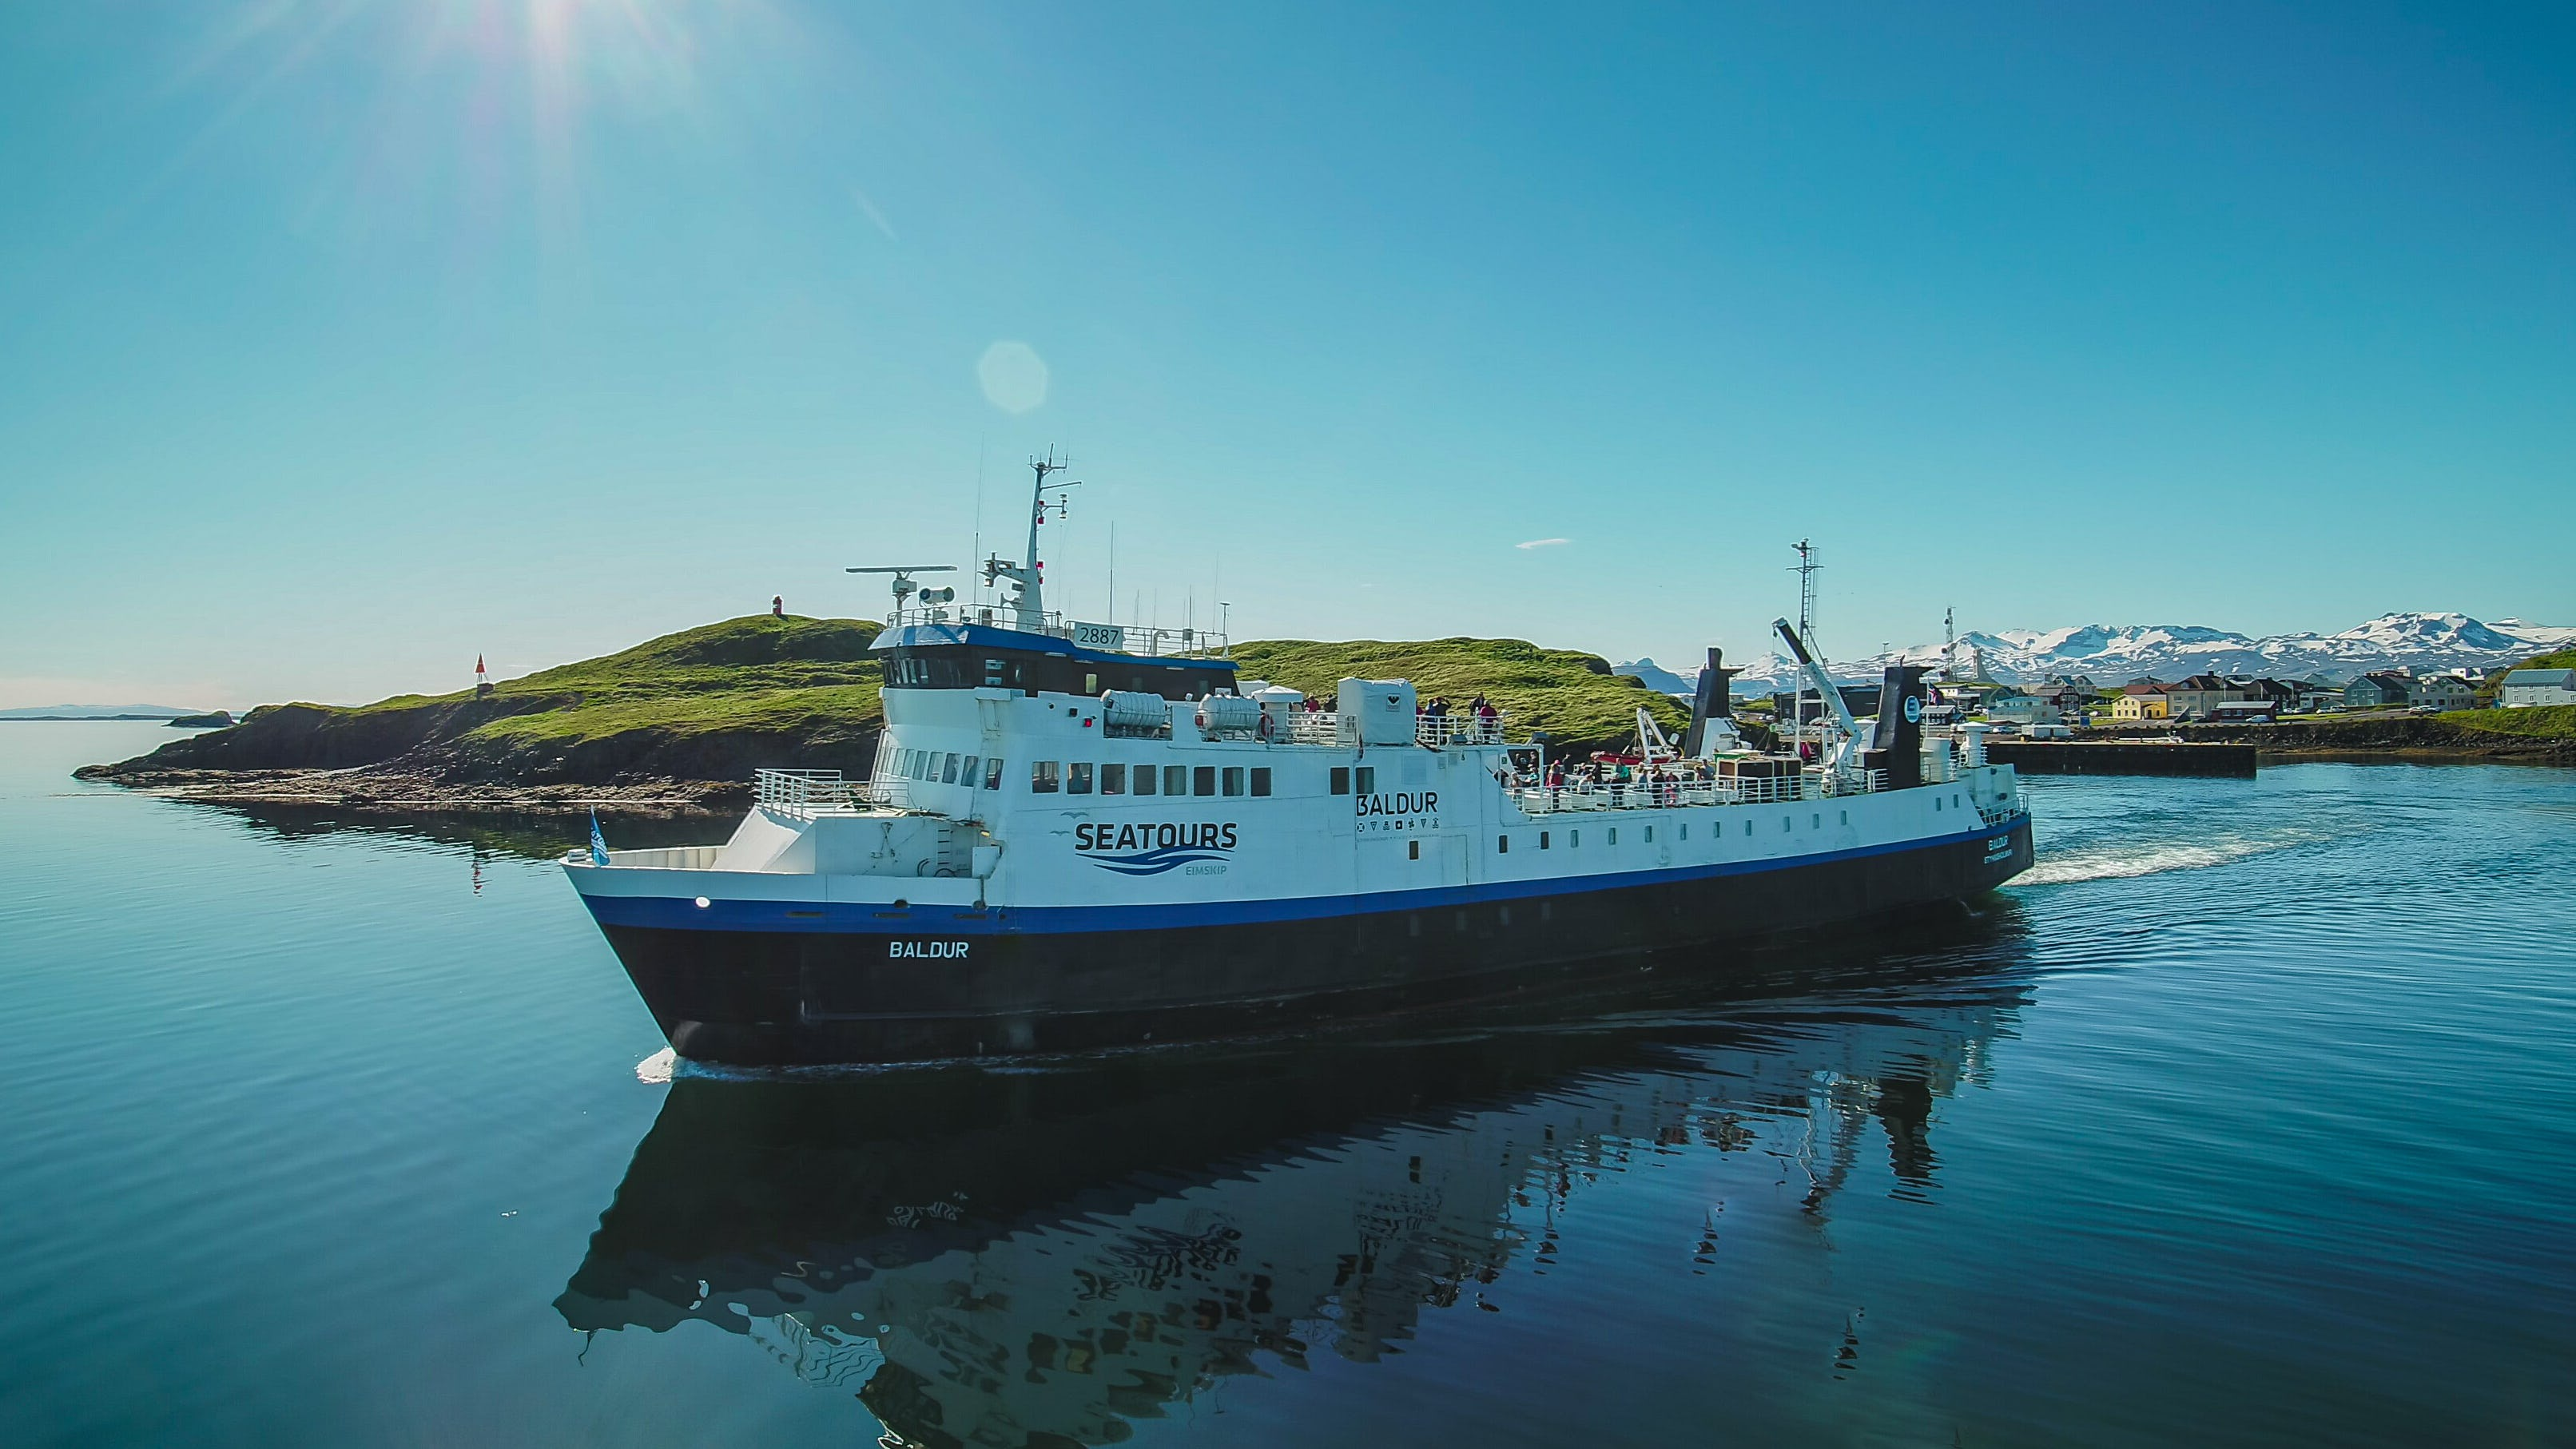 The Baldur Ferry that departs from Stykkisholmur in Snaefellsnes and sails to the Westfjords